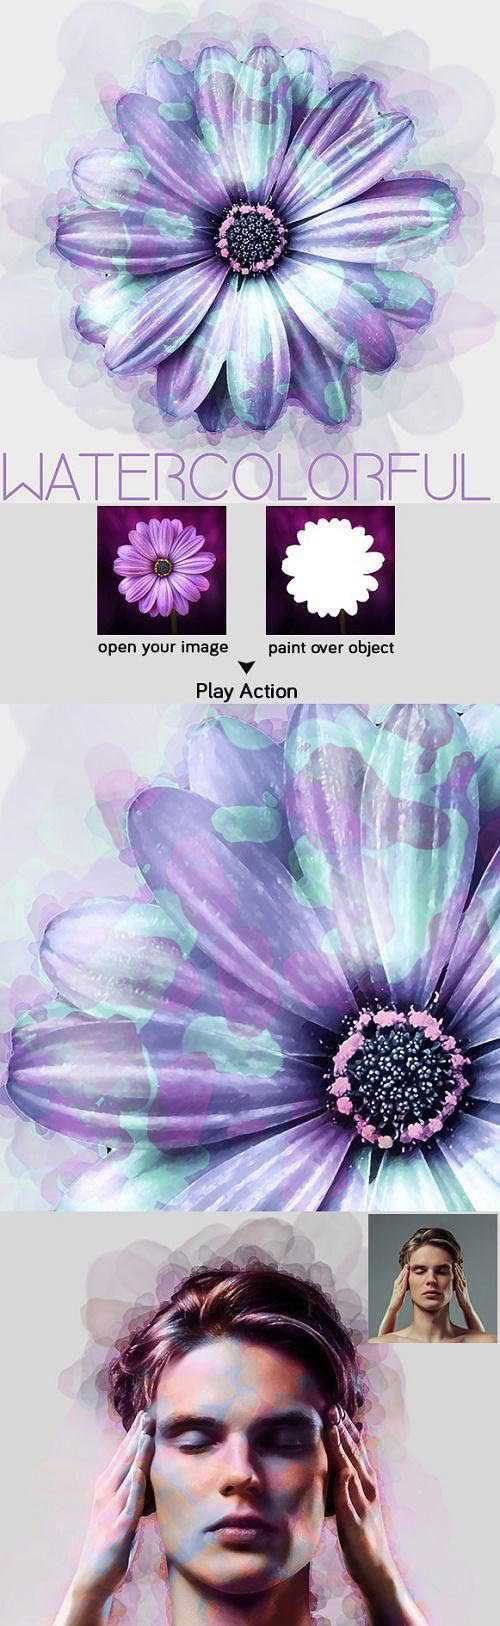 WaterColorful Photoshop Action – 23339204